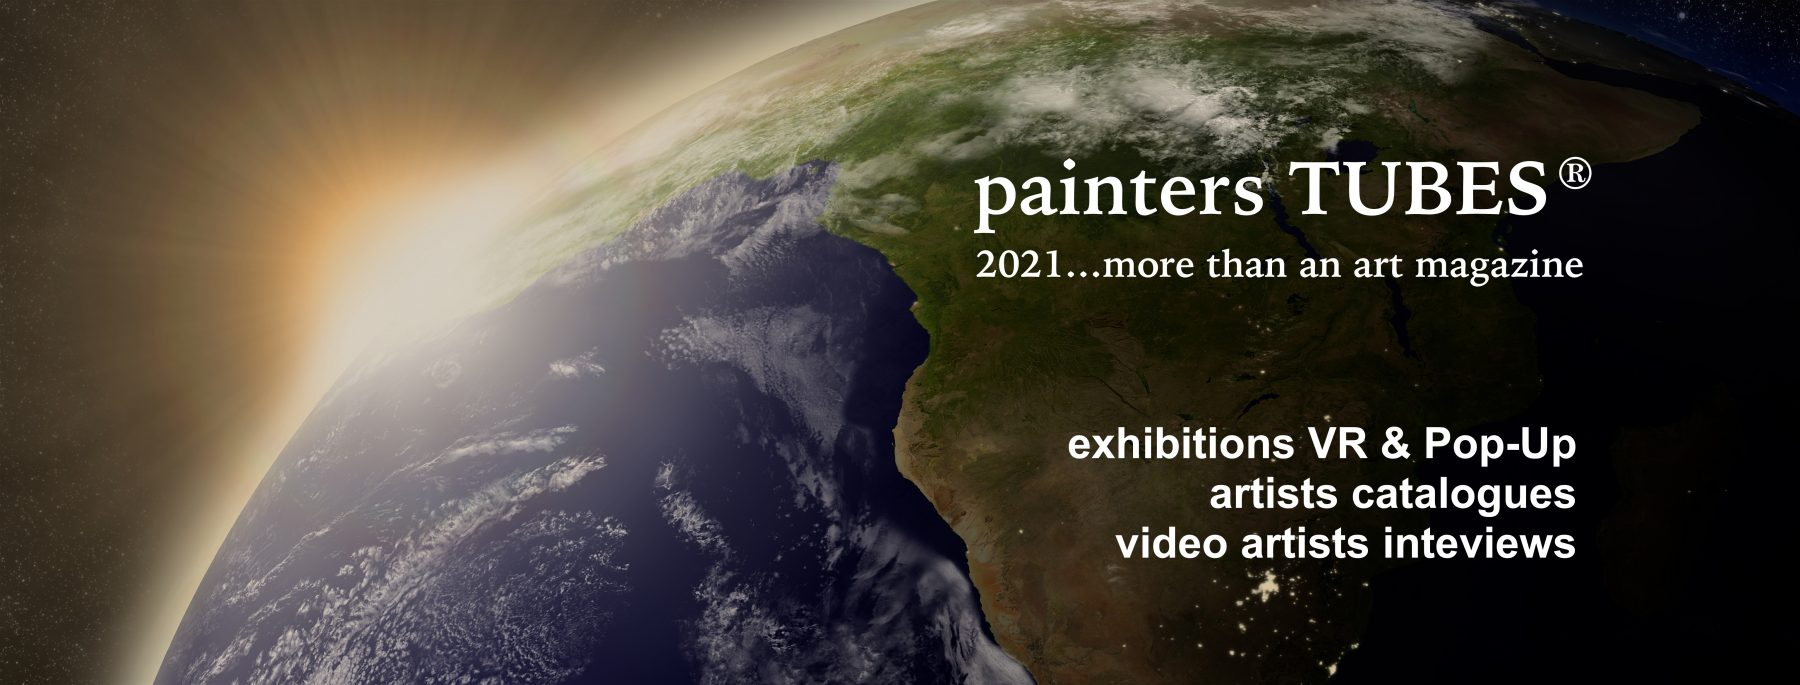 painters TUBES is more than just an Art Magazine in 2021